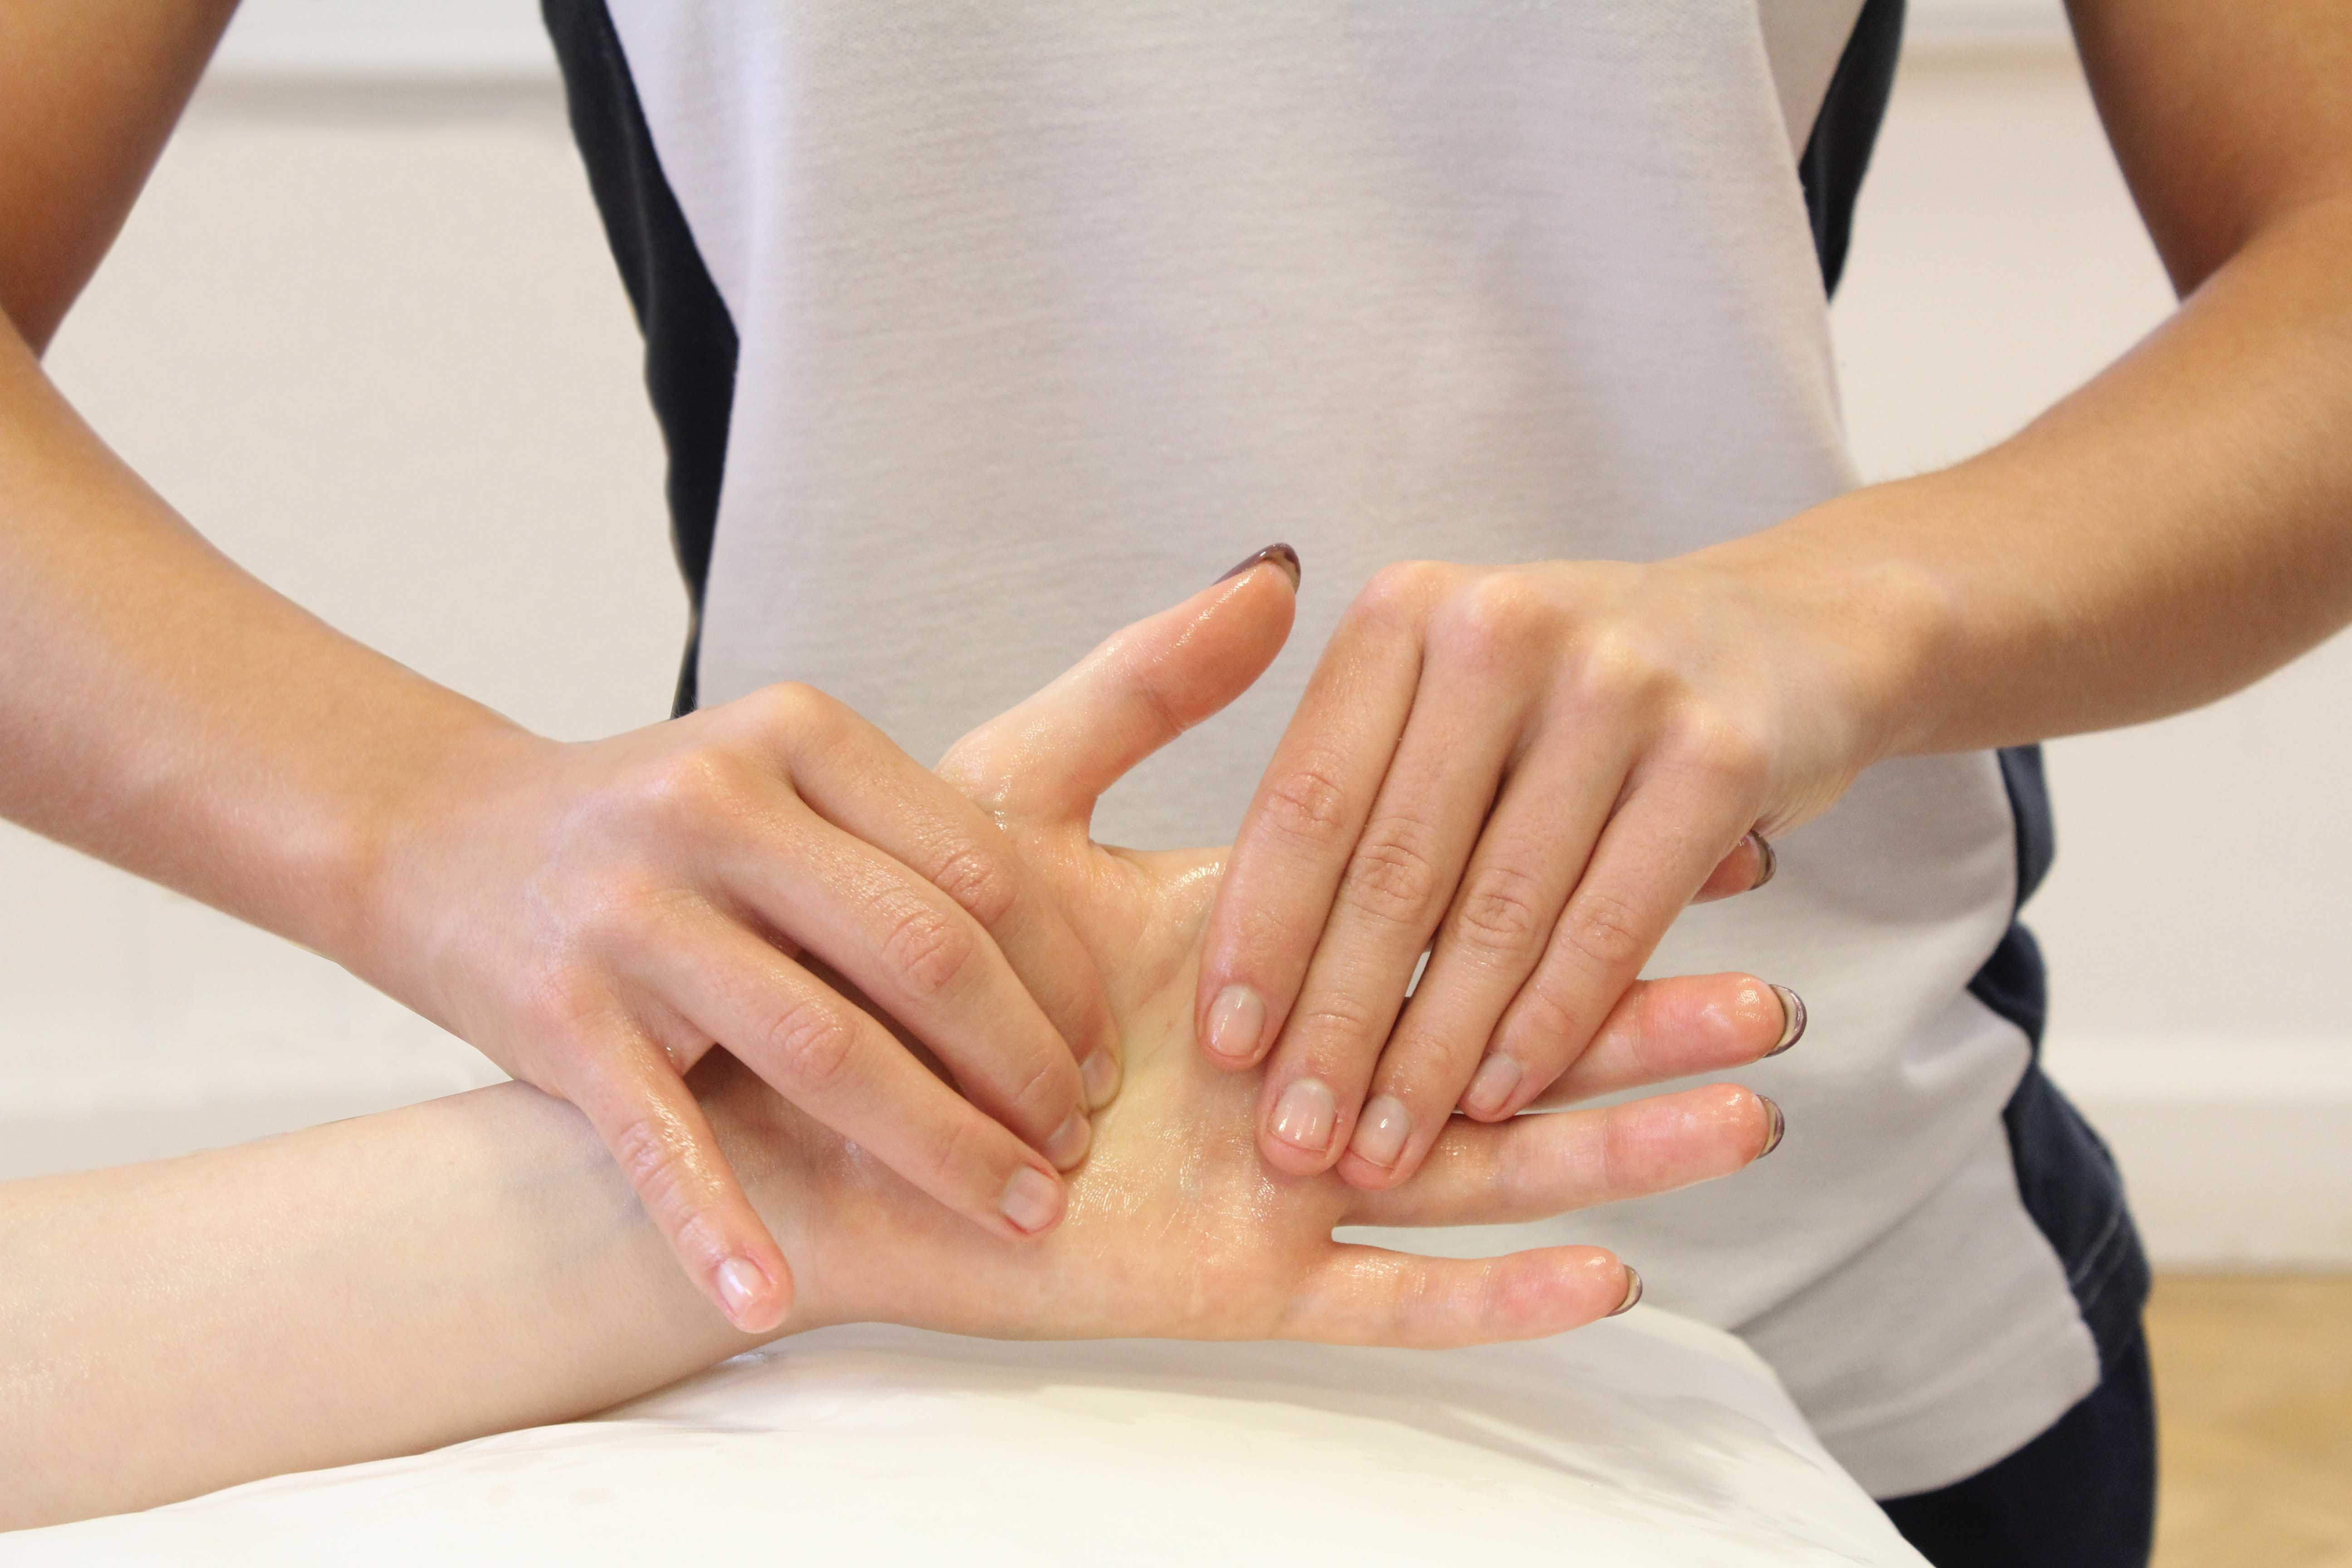 Soft tissue massage and mobilisations of the palm and fingers by a specialist therapist